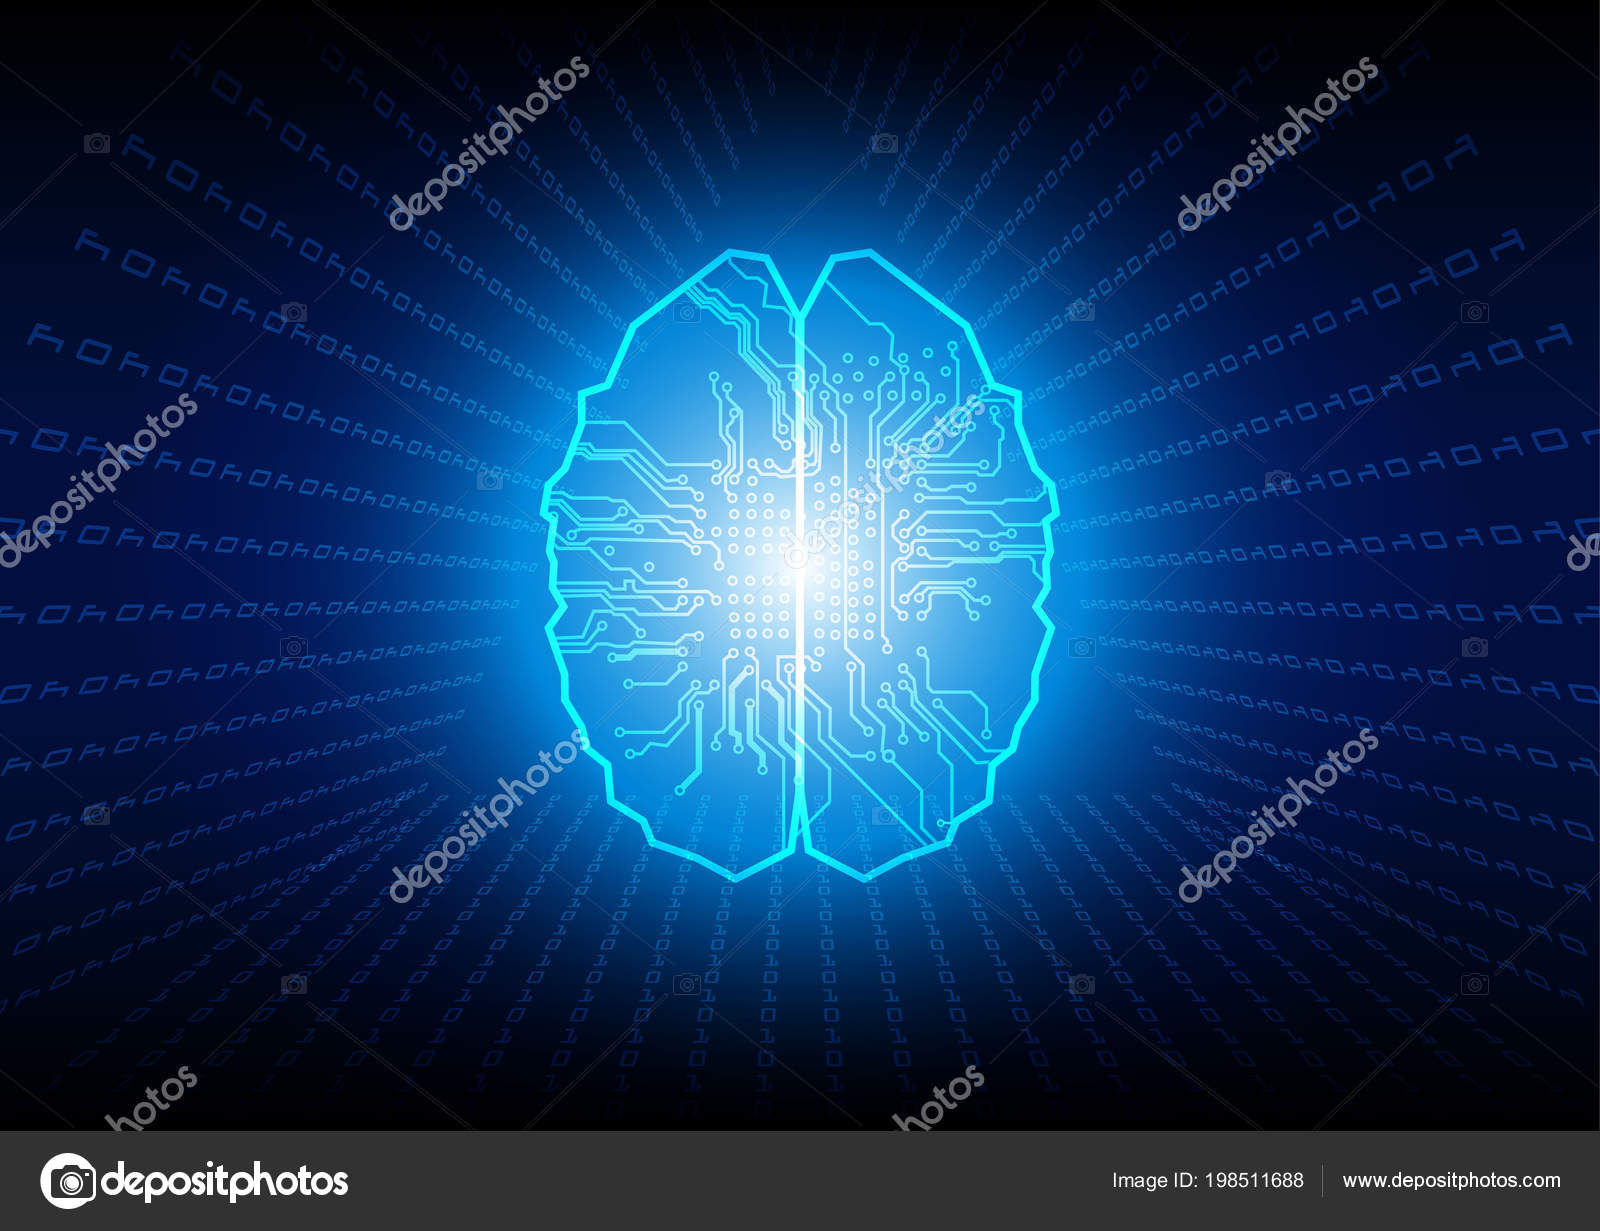 Abstract Brain Binary Code Technology Background Concept Abstact With Circuit Board And Stock Images Illustration Vector